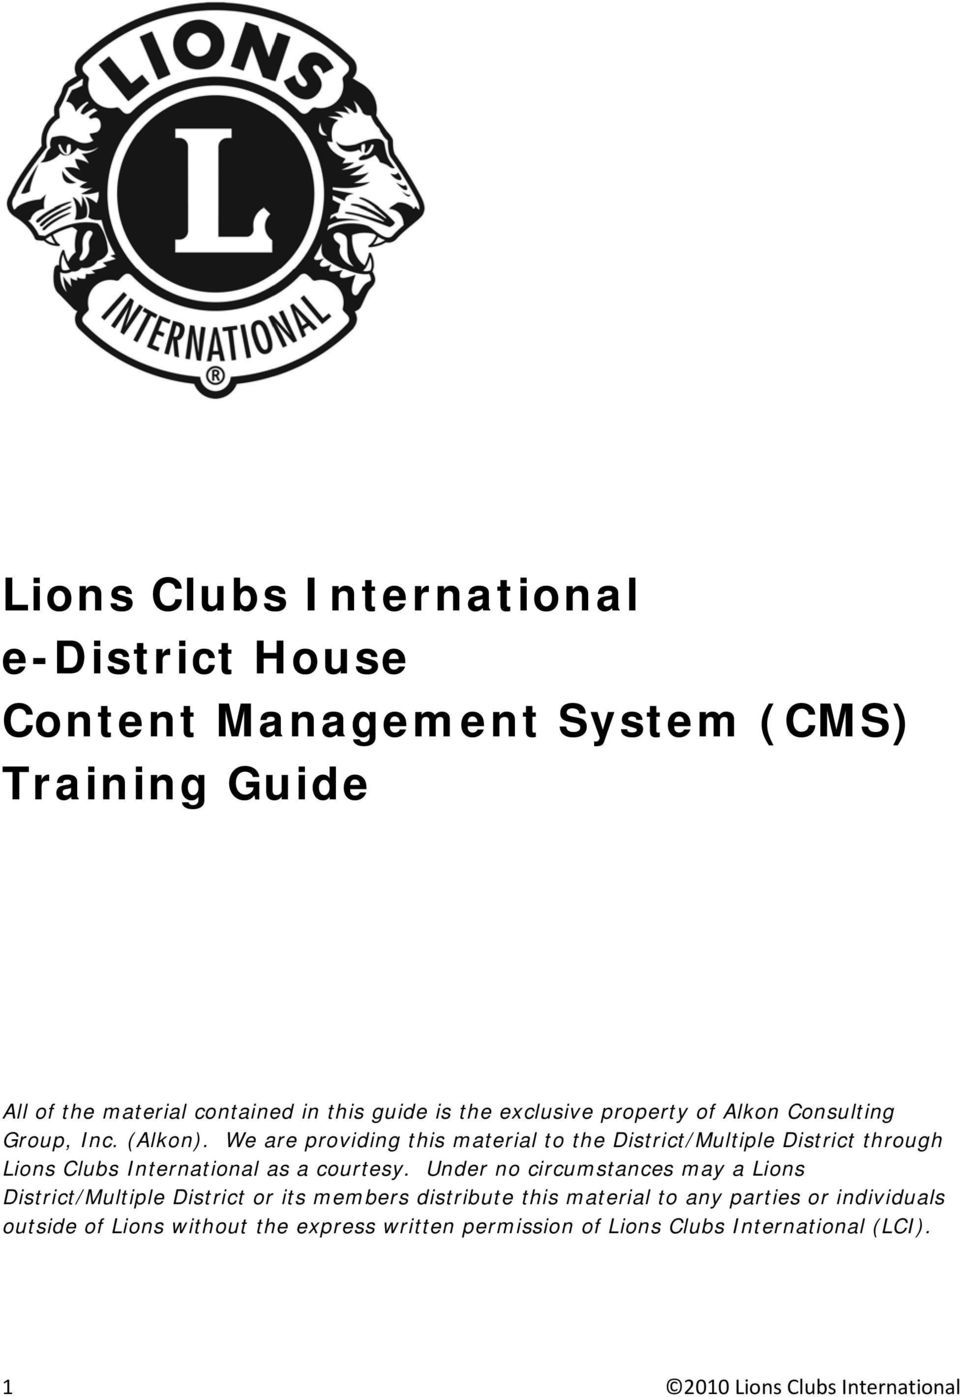 We are providing this material to the District/Multiple District through Lions Clubs International as a courtesy.